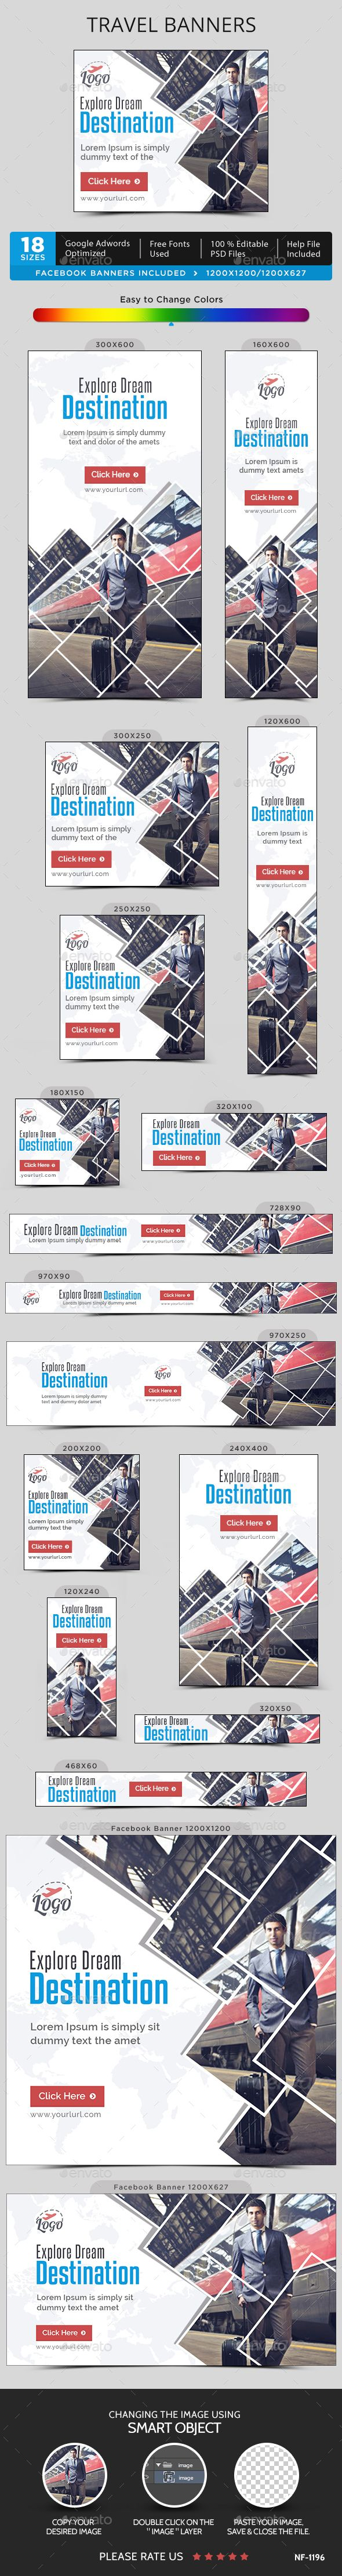 Travel Banners — Photoshop PSD #studio #flat design • Available here → https://graphicriver.net/item/travel-banners/15633802?ref=pxcr